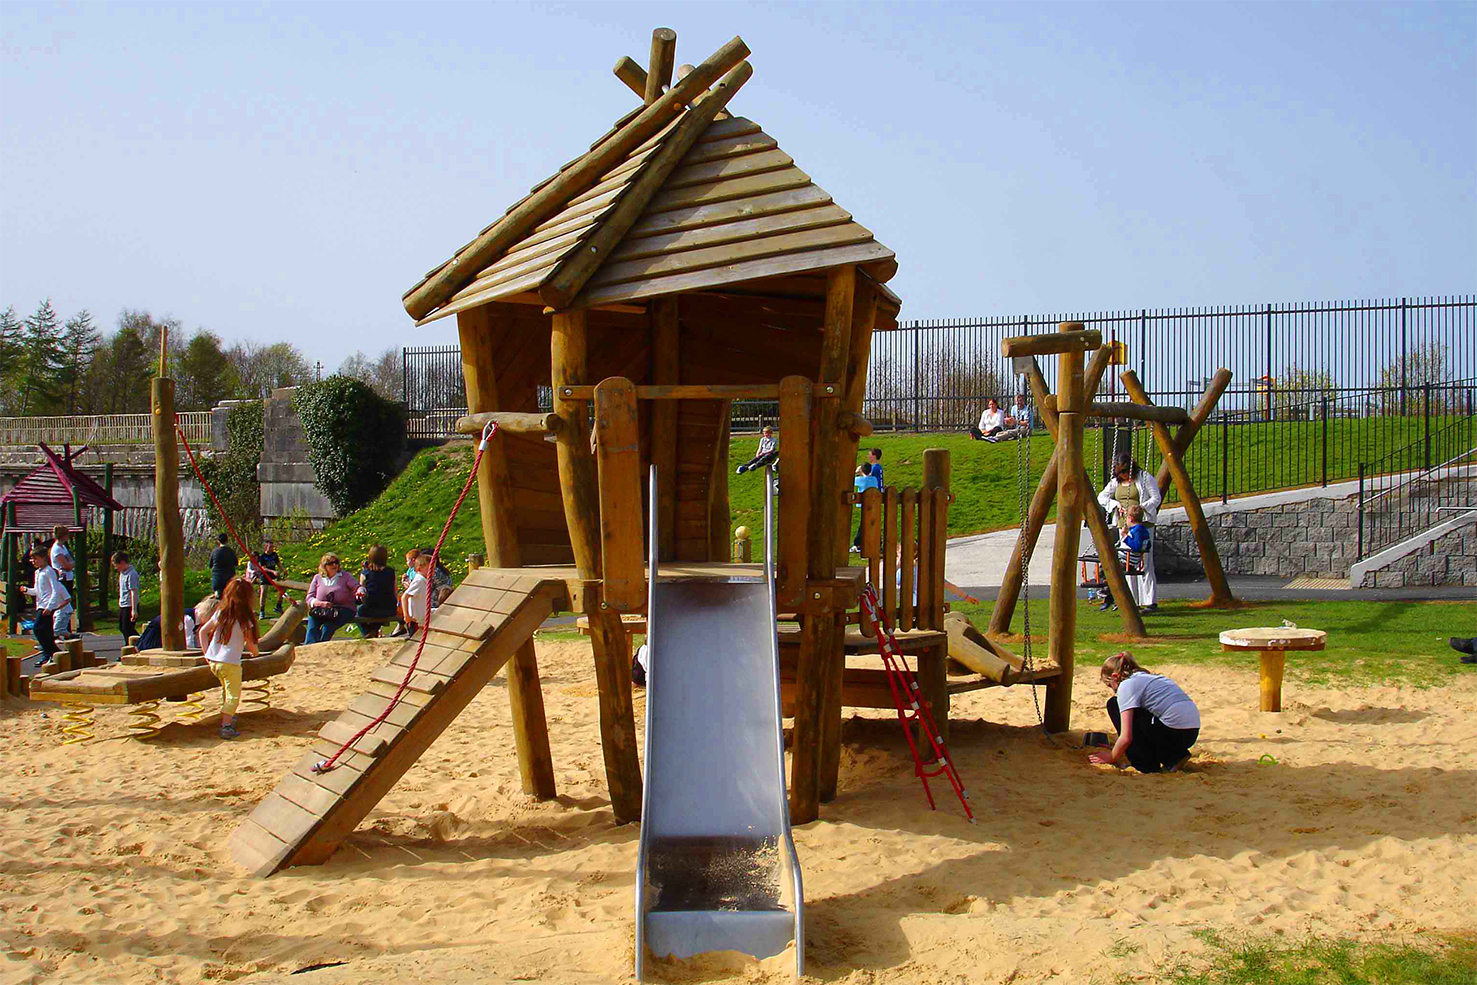 Playground for Monasterevin in Kildare